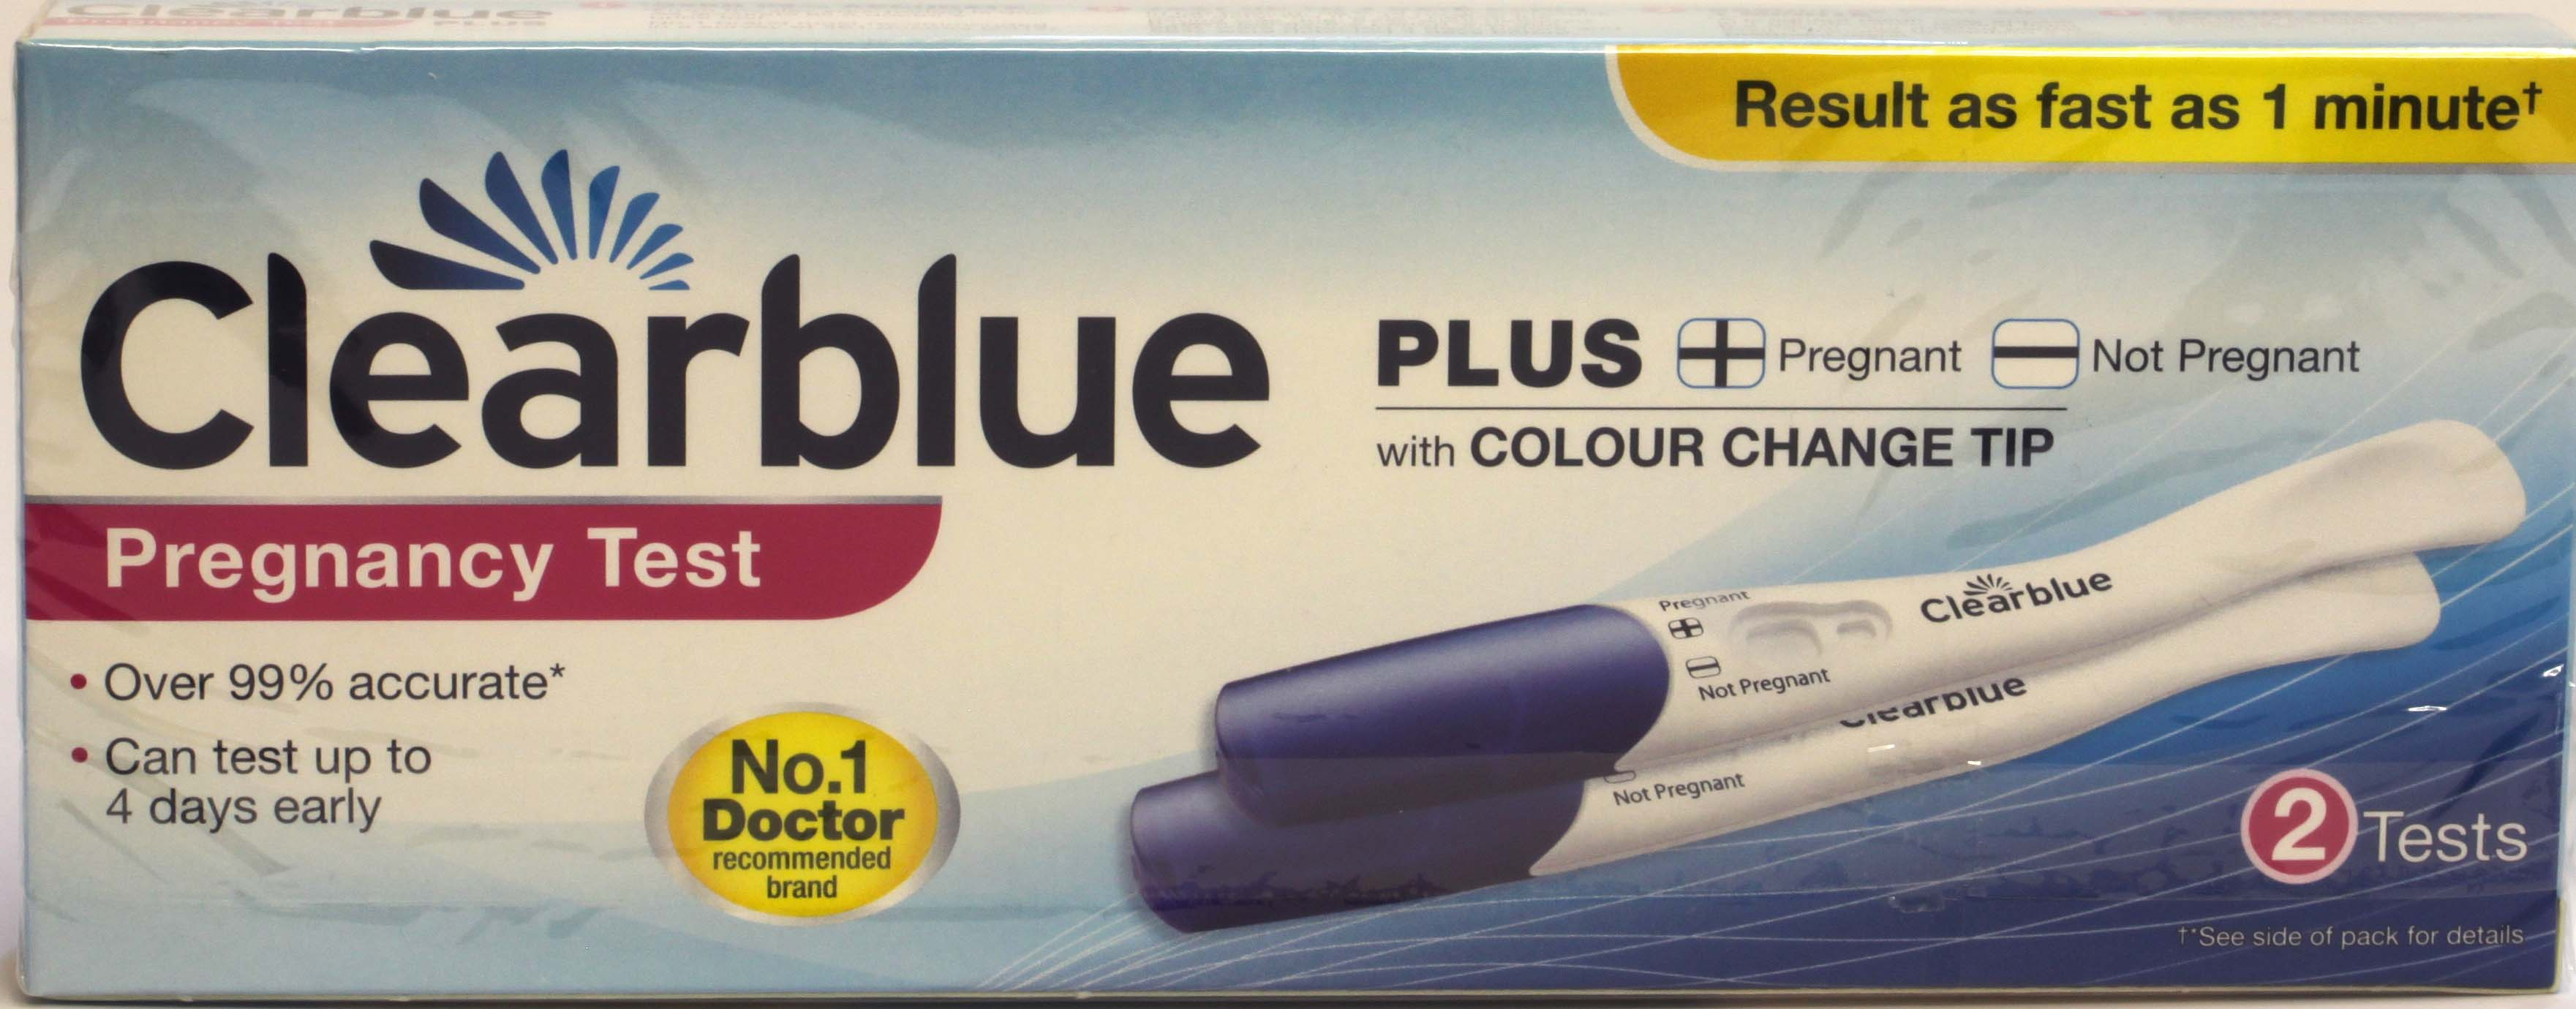 Clearblue  Pregnancy Test - 2 Test